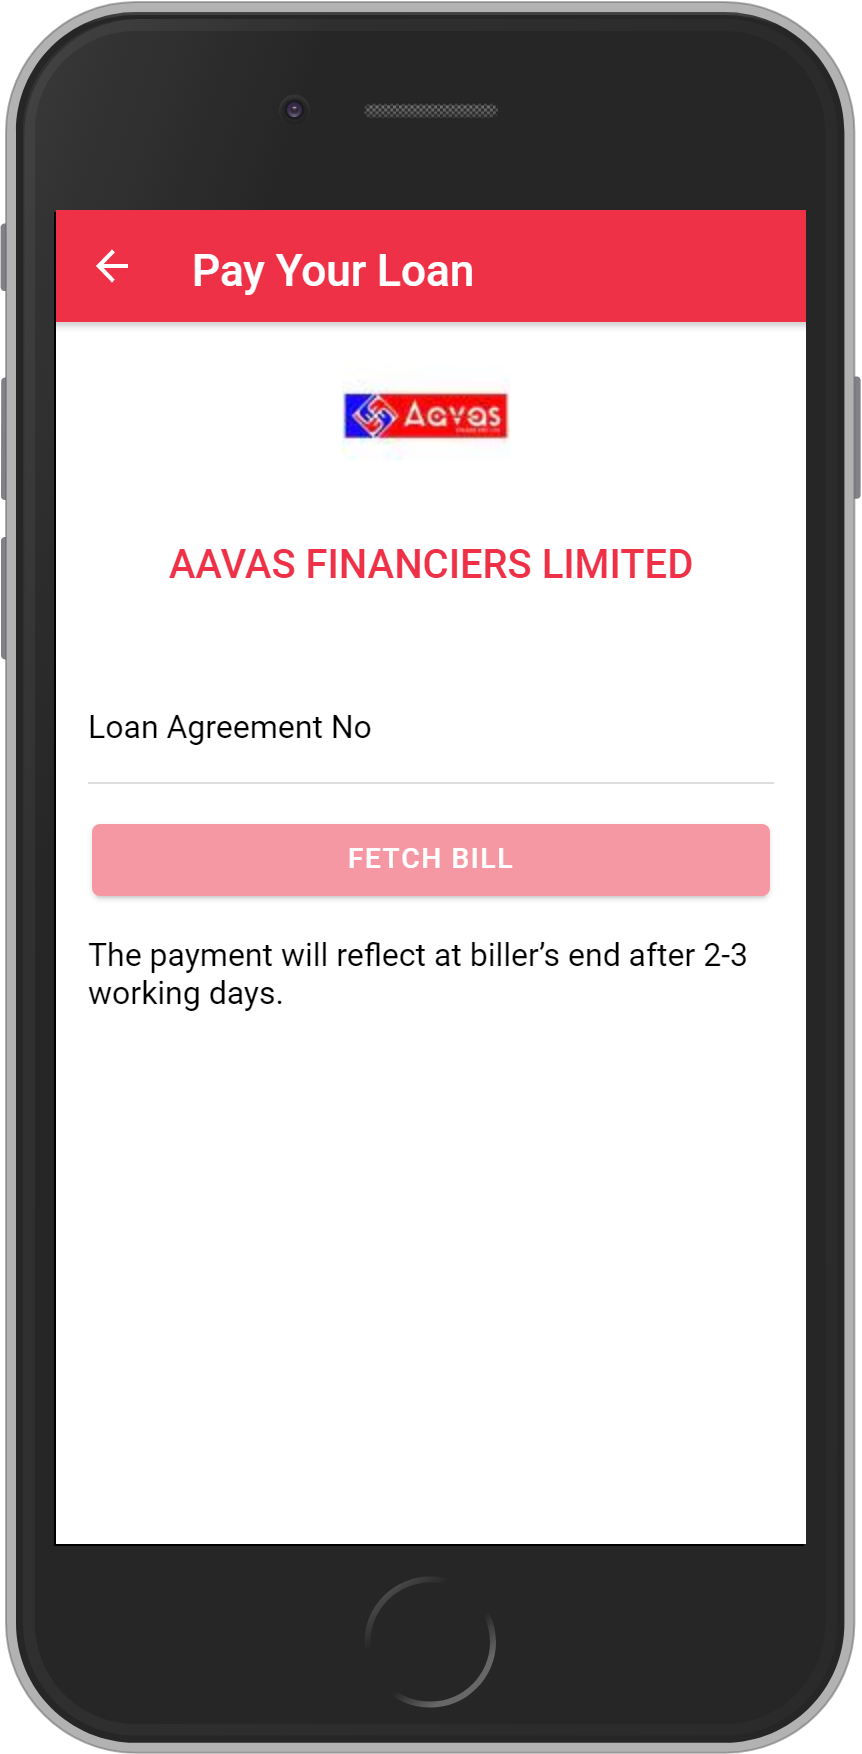 Get UNLIMITED <b>0.1%</b> CASHBACK on AAVAS FINANCIERS LIMITED Loan Payment.